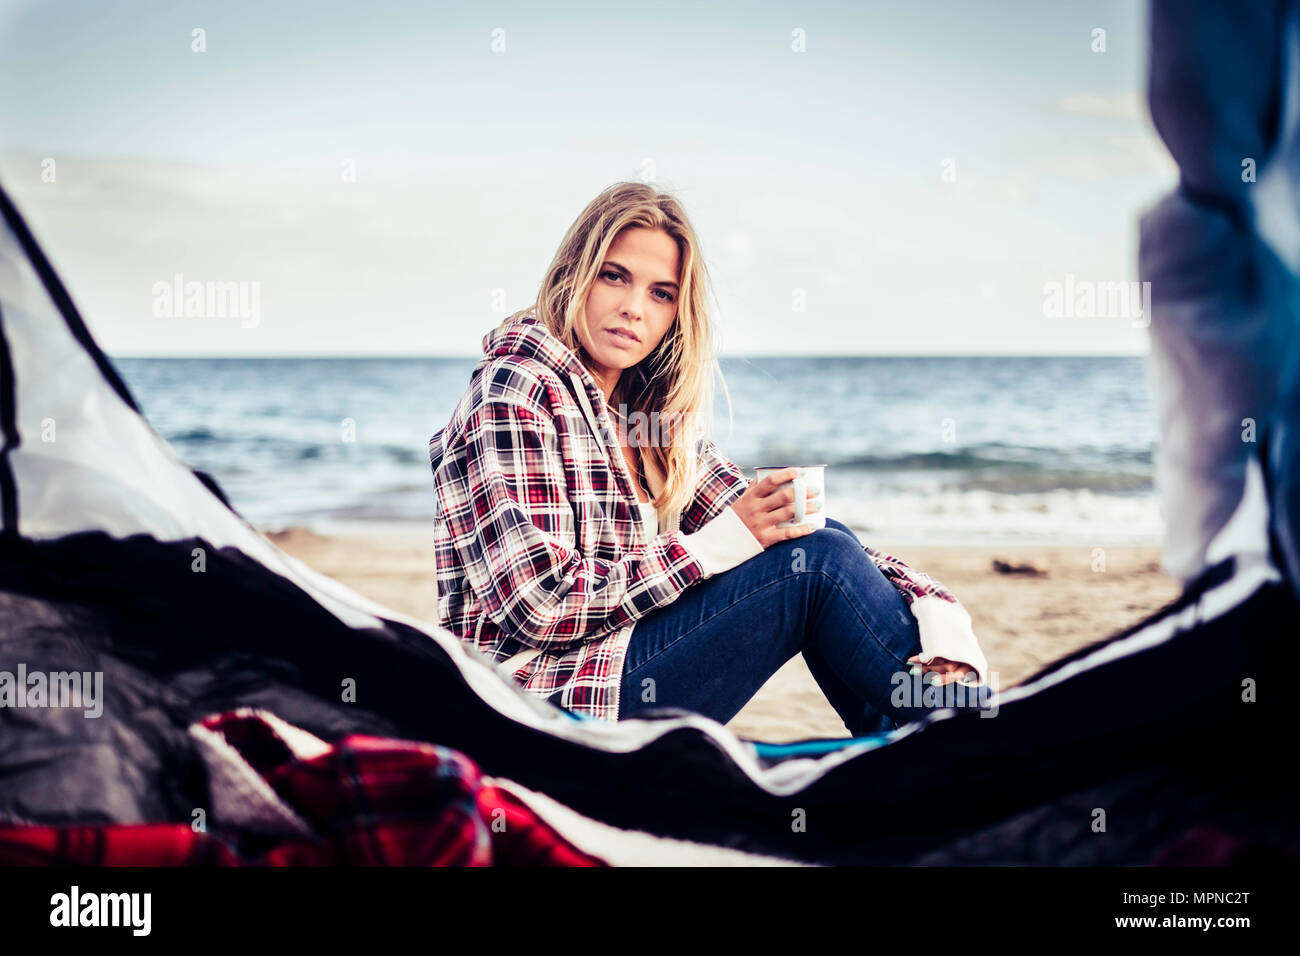 wild vacation alternative on the beach with a tent for a beautiful blonde female taking a mug with hot drink. Look at camera and rest. Alternative lif - Stock Image